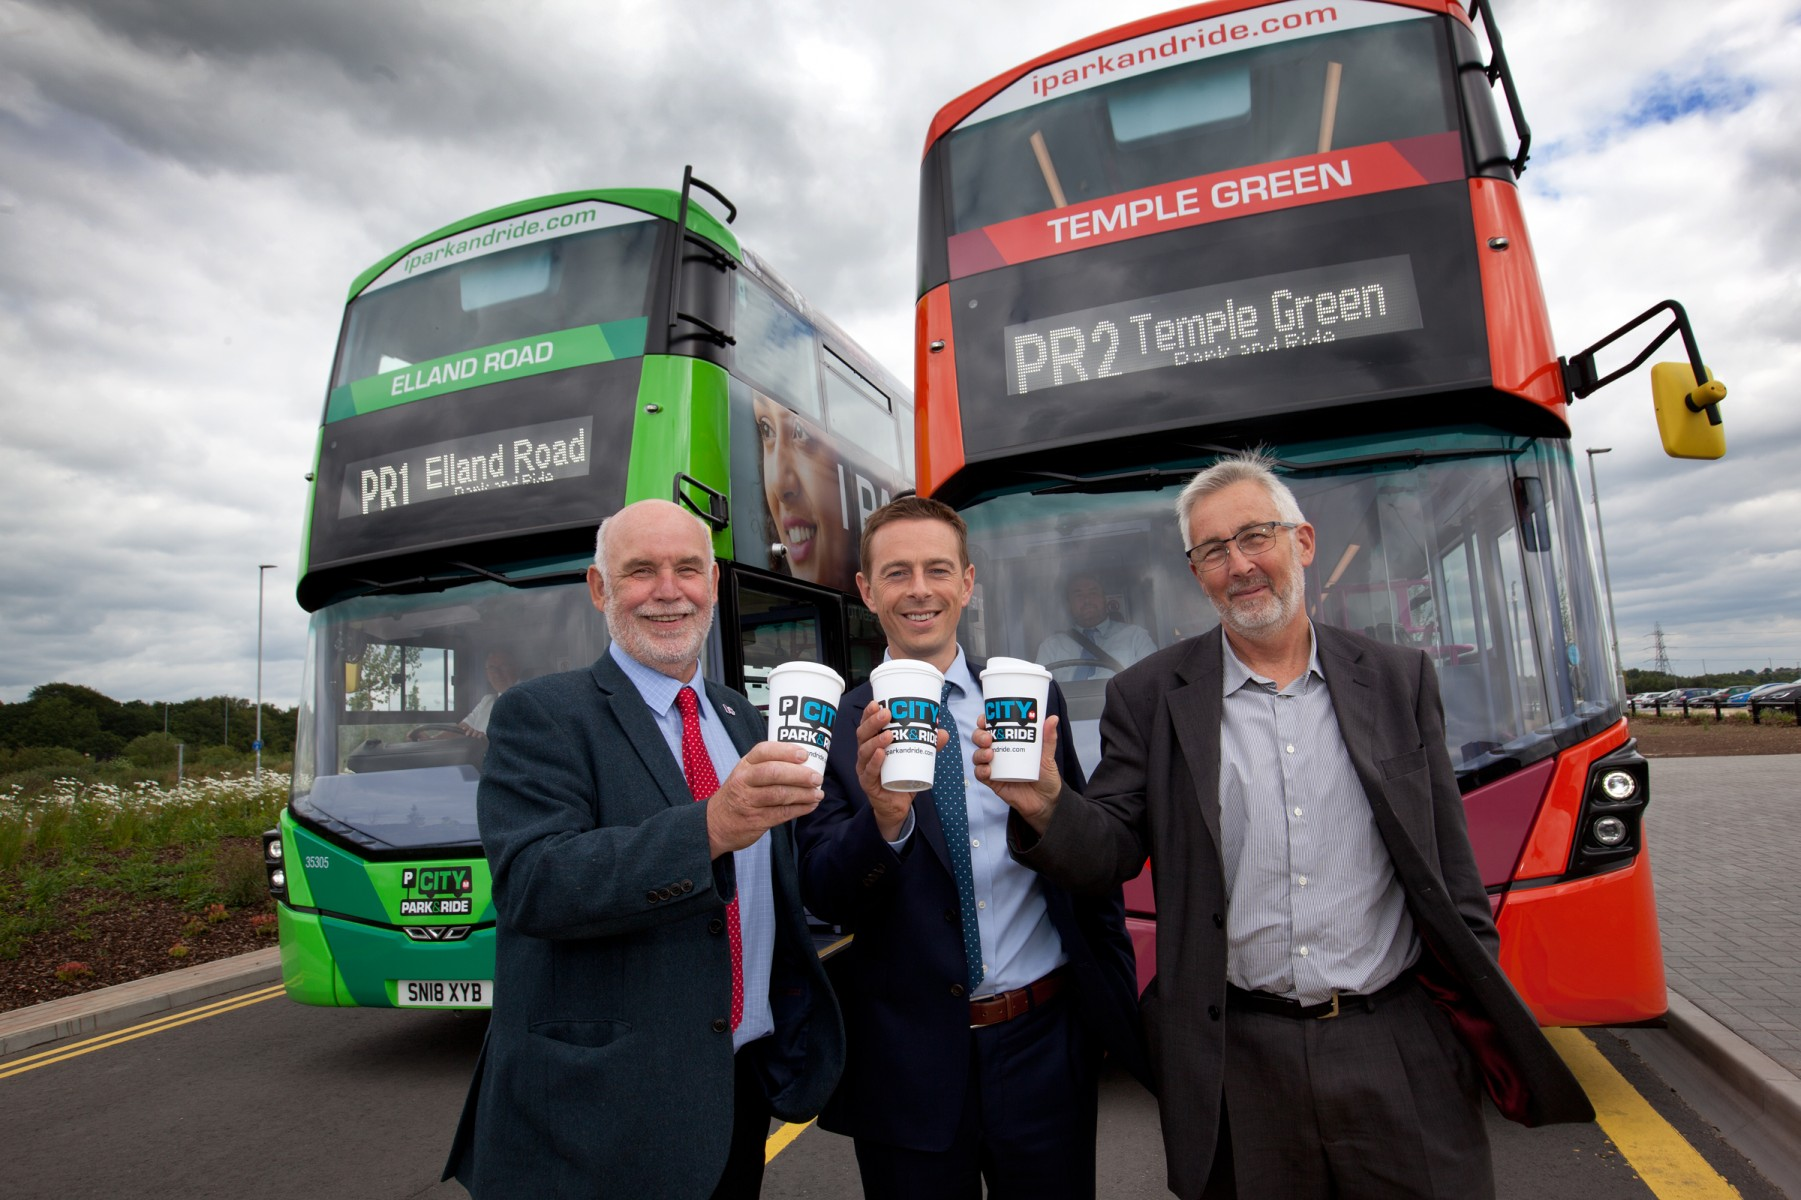 New park and ride buses for Leeds